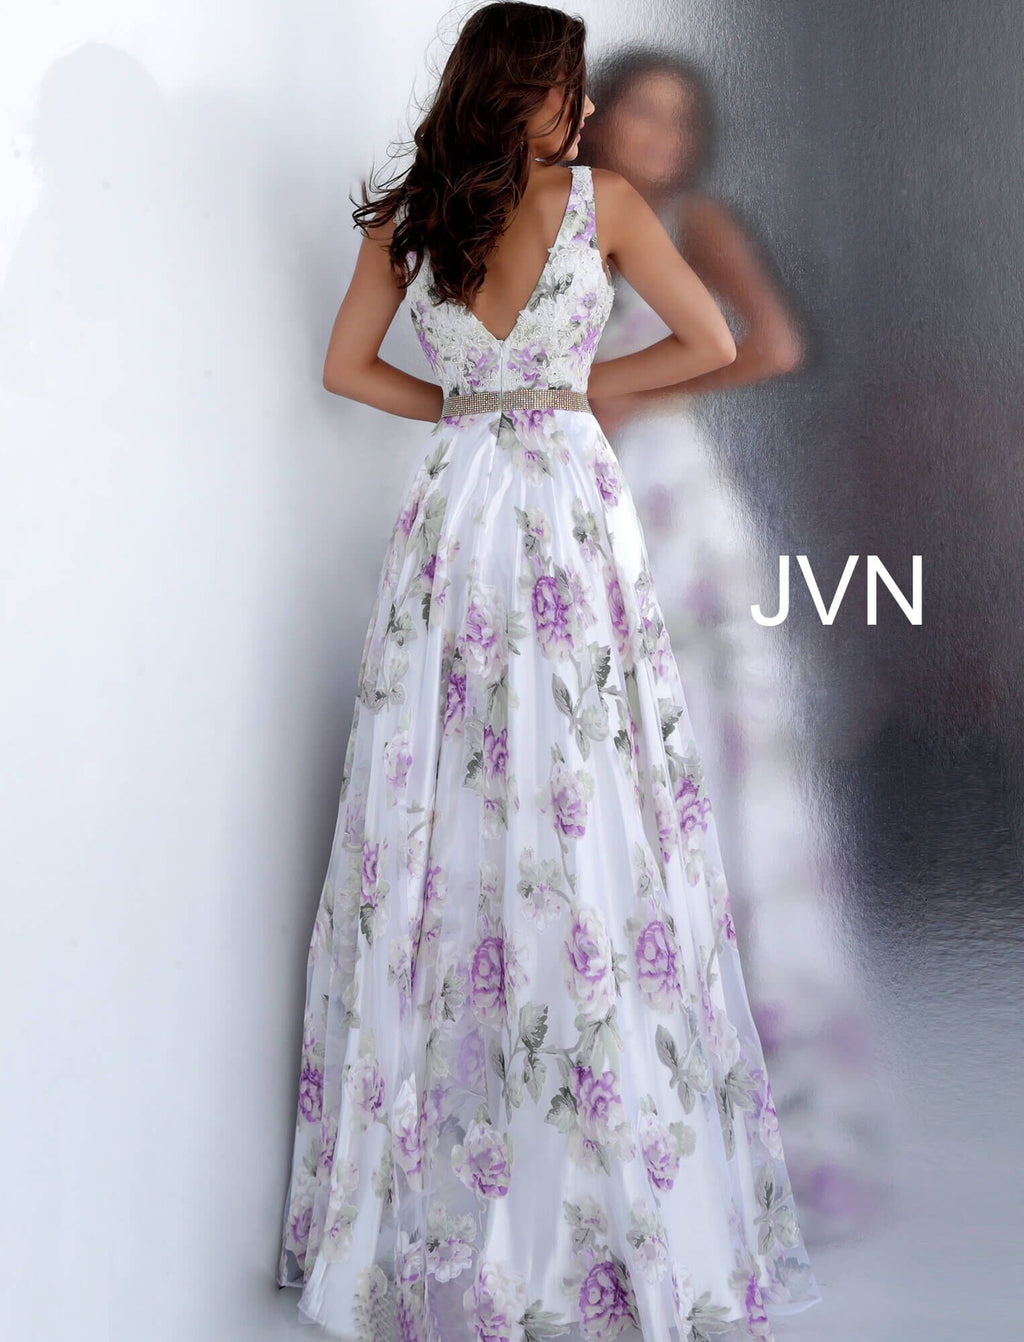 JVN by JOVANI White Floral Print Embellished Belt Prom Ballgown - CYC Boutique